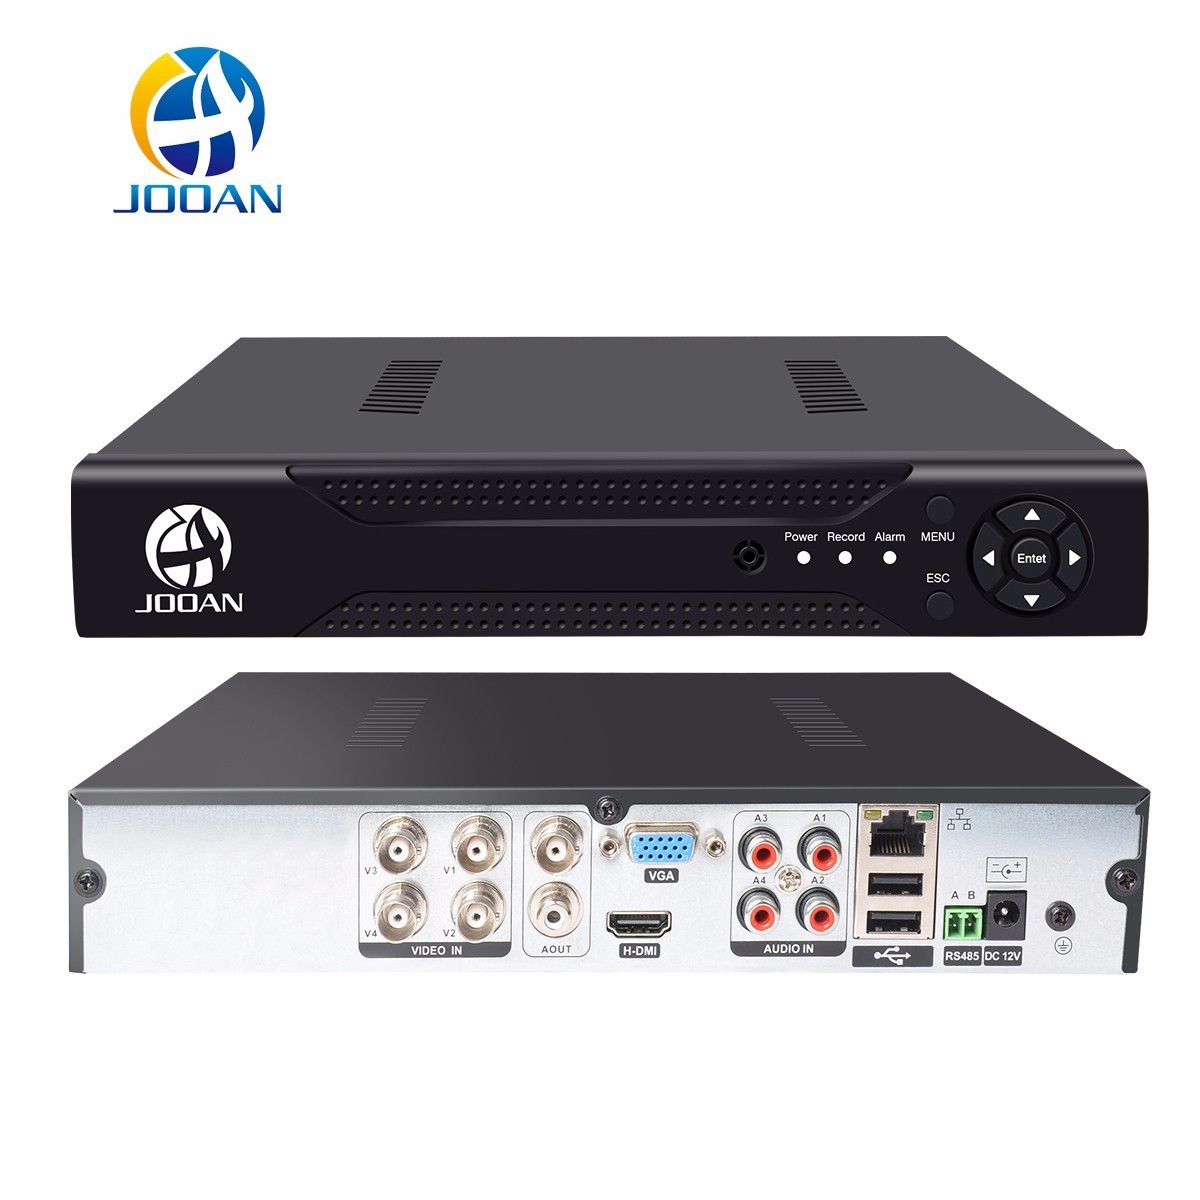 JOOAN 4CH CCTV DVR Security System 1080N H.264 HD-Output P2P Hybrid 5 in 1 Onvif IP Camera TVI CVI AHD Video Recorder